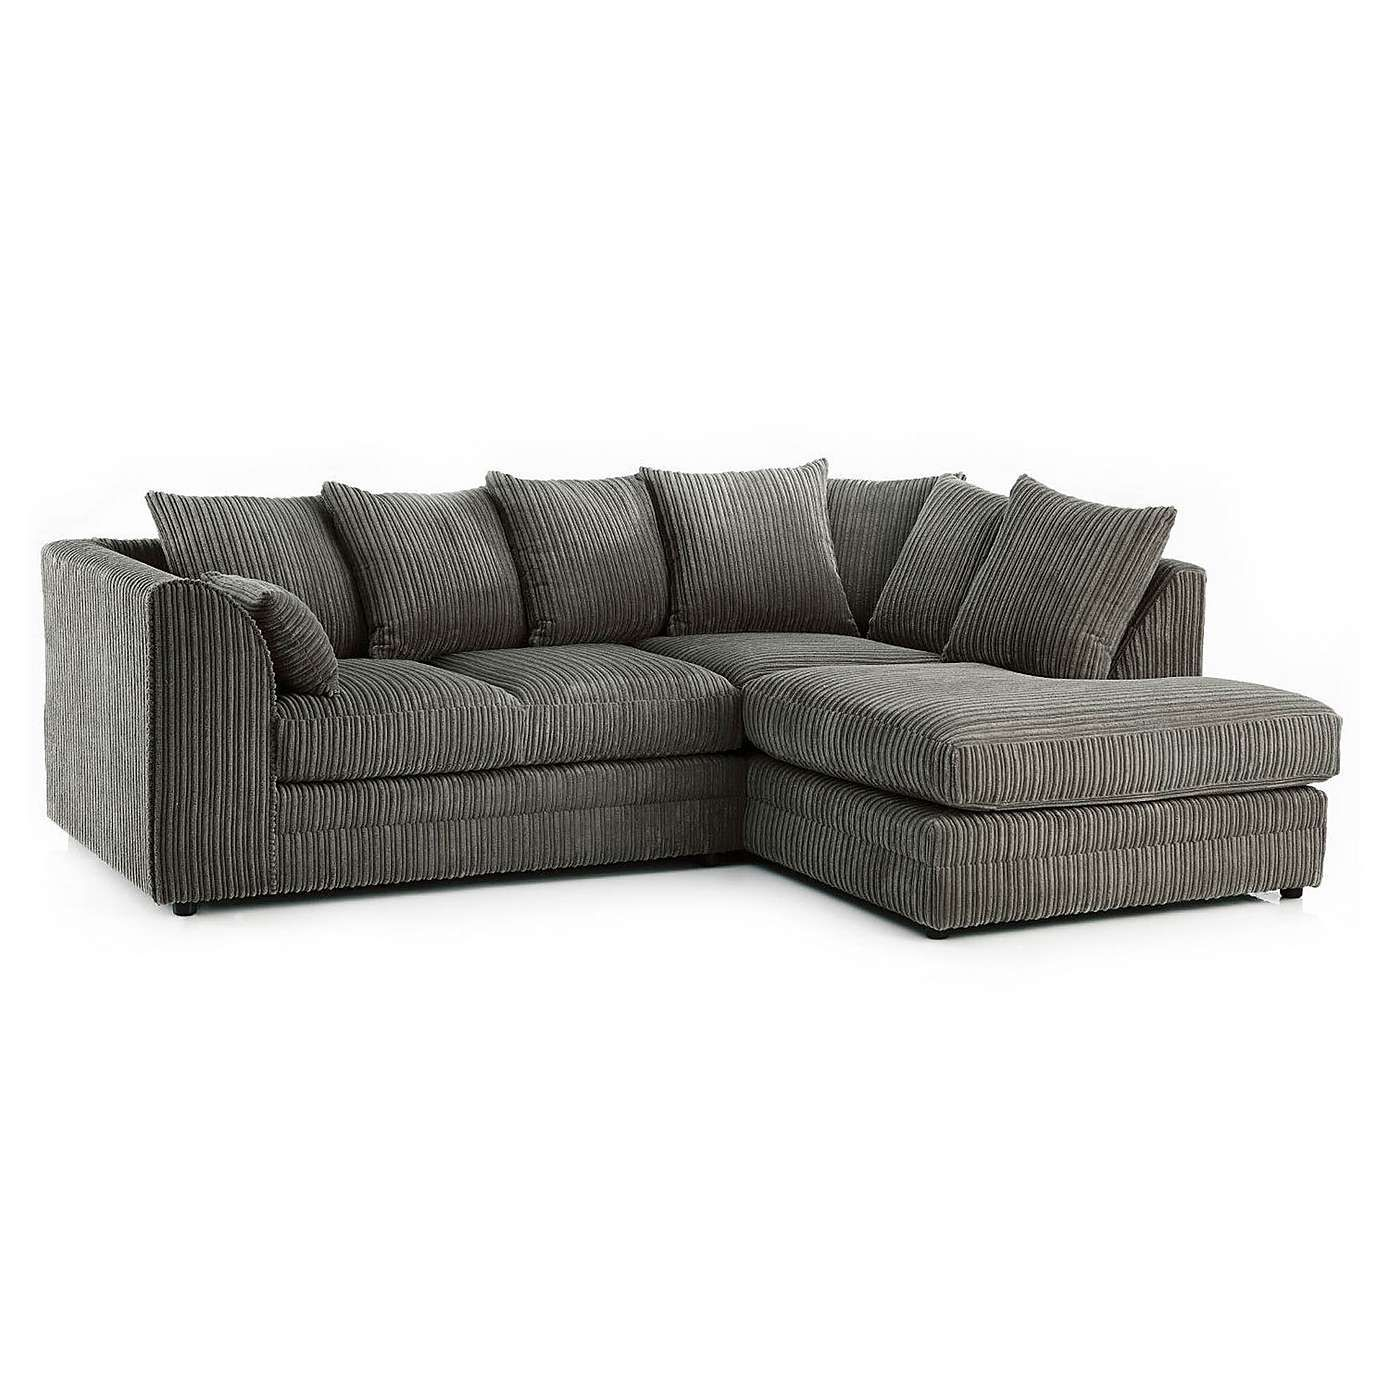 Corner Sofa Bed Jumbo Cord Chicago Jumbo Cord Right Hand Corner Sofa In 2019 House Stuff